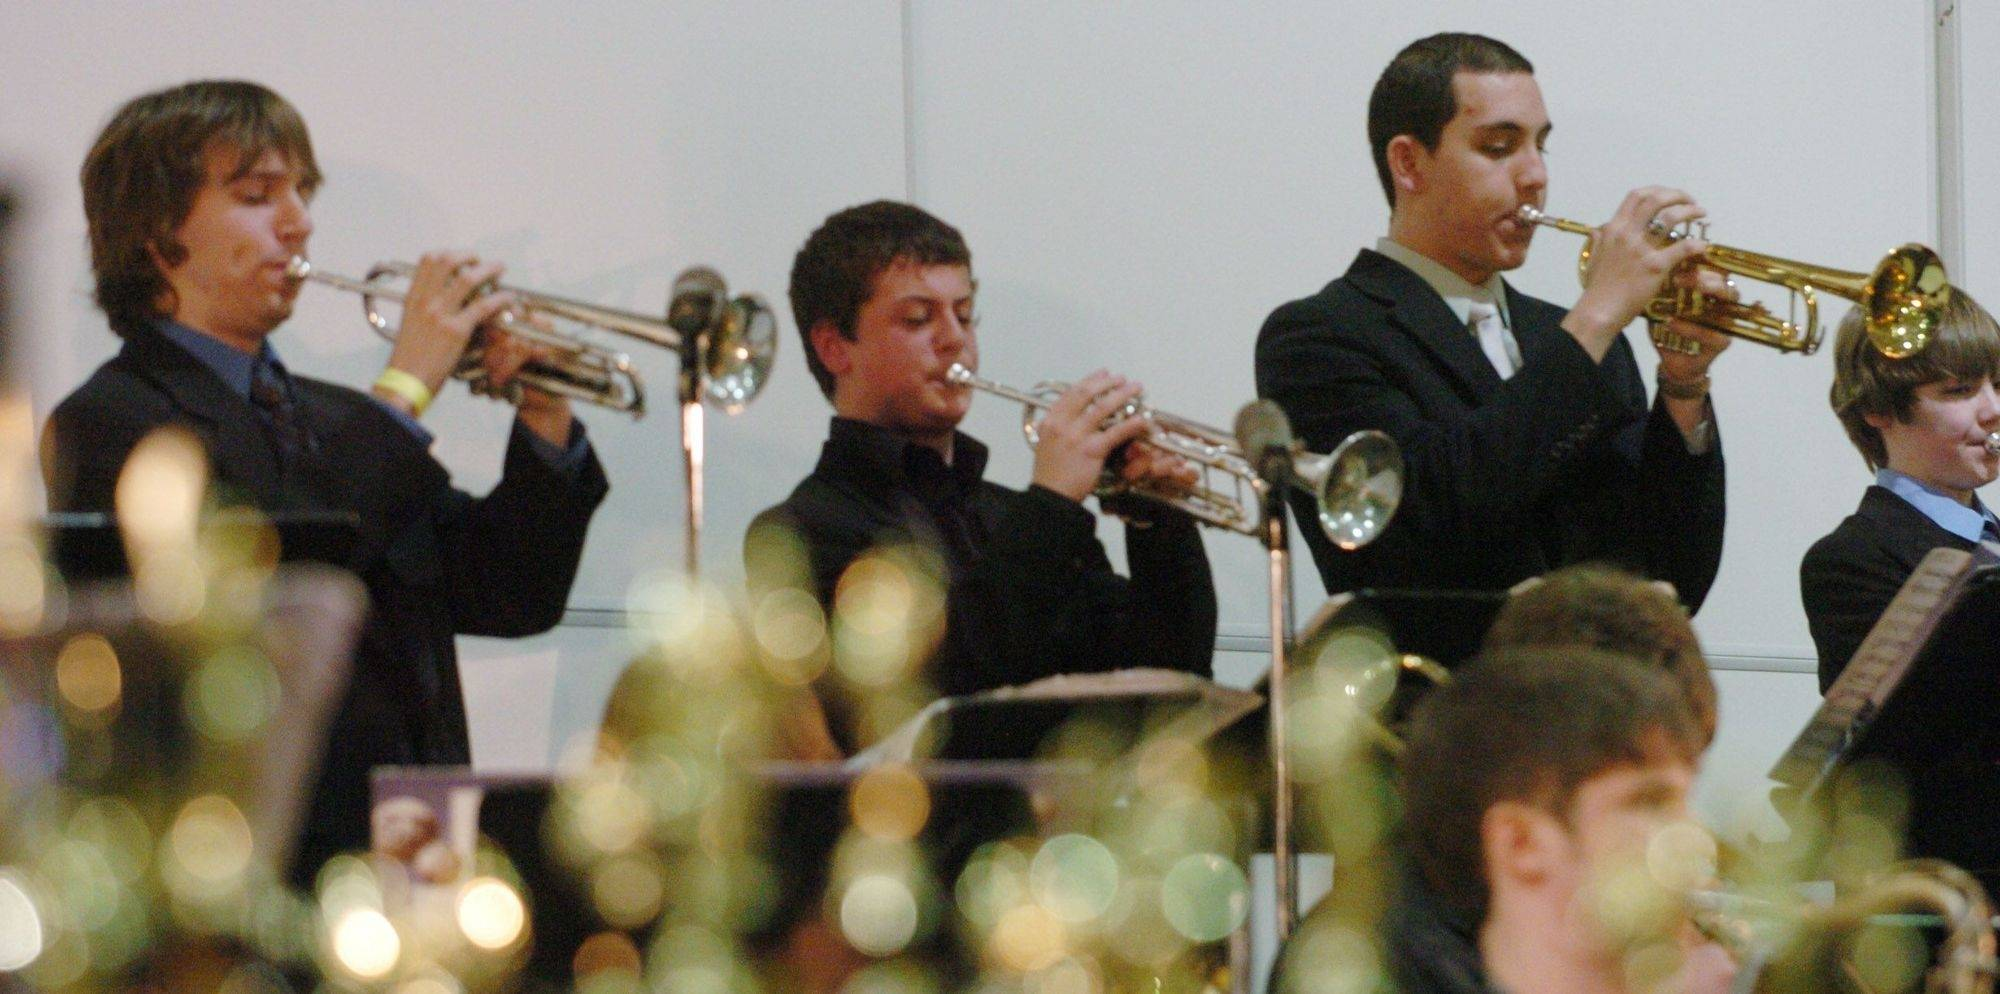 The trumpet section of the Warren High School Band gets funky during its Jazz in the Meadows performance.